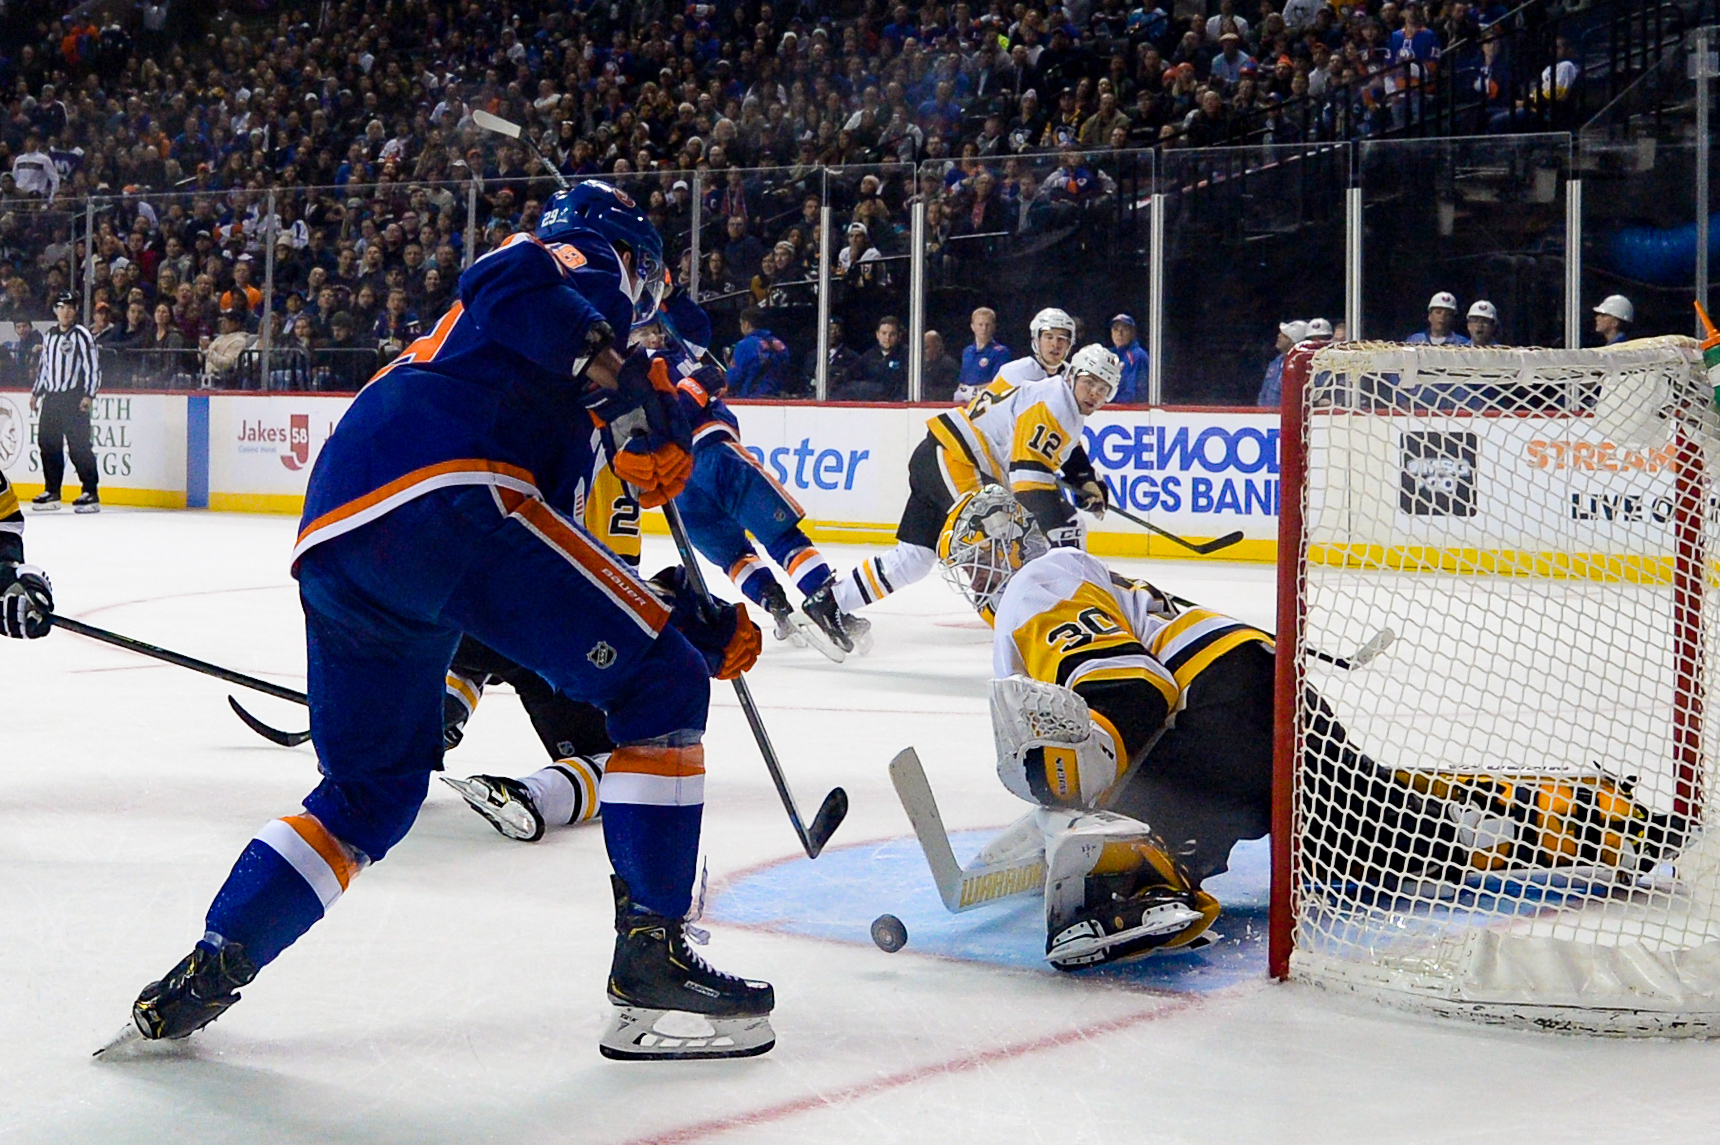 Nov 7, 2019; Brooklyn, NY, USA; Pittsburgh Penguins goaltender Matt Murray (30) makes a save against New York Islanders center Brock Nelson (29) during the second period at Barclays Center. Mandatory Credit: Dennis Schneidler-USA TODAY Sports